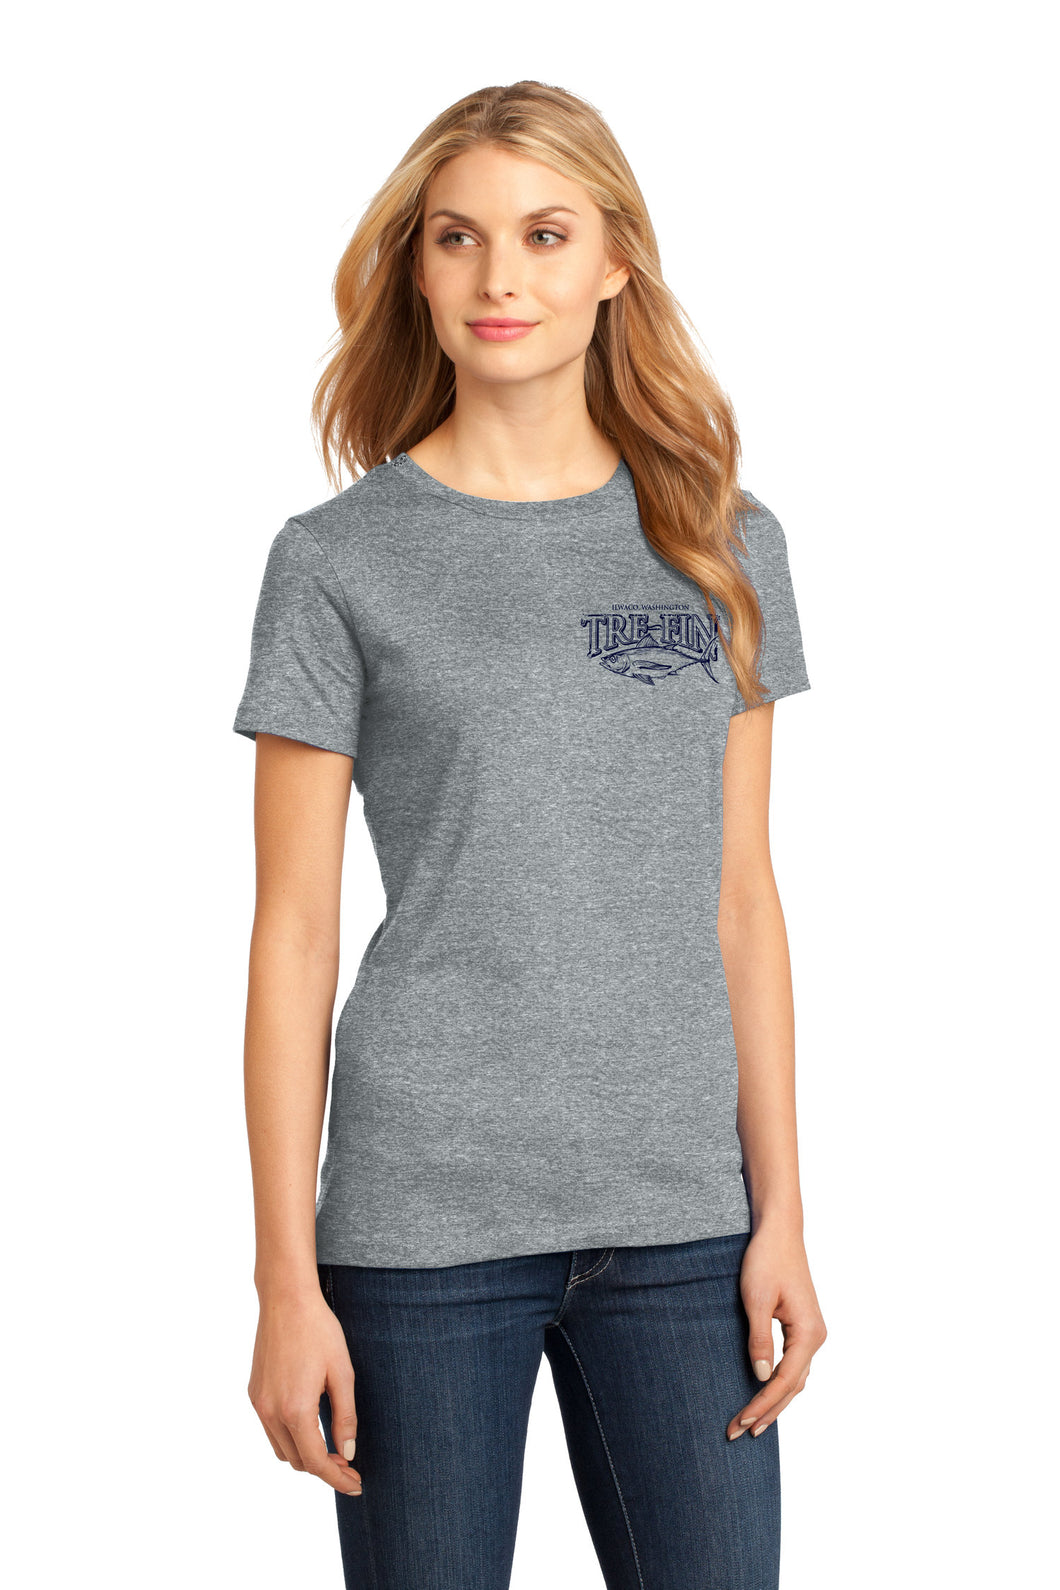 Women's Heritage Logo Short-Sleeve T-Shirt in Heathered Steel